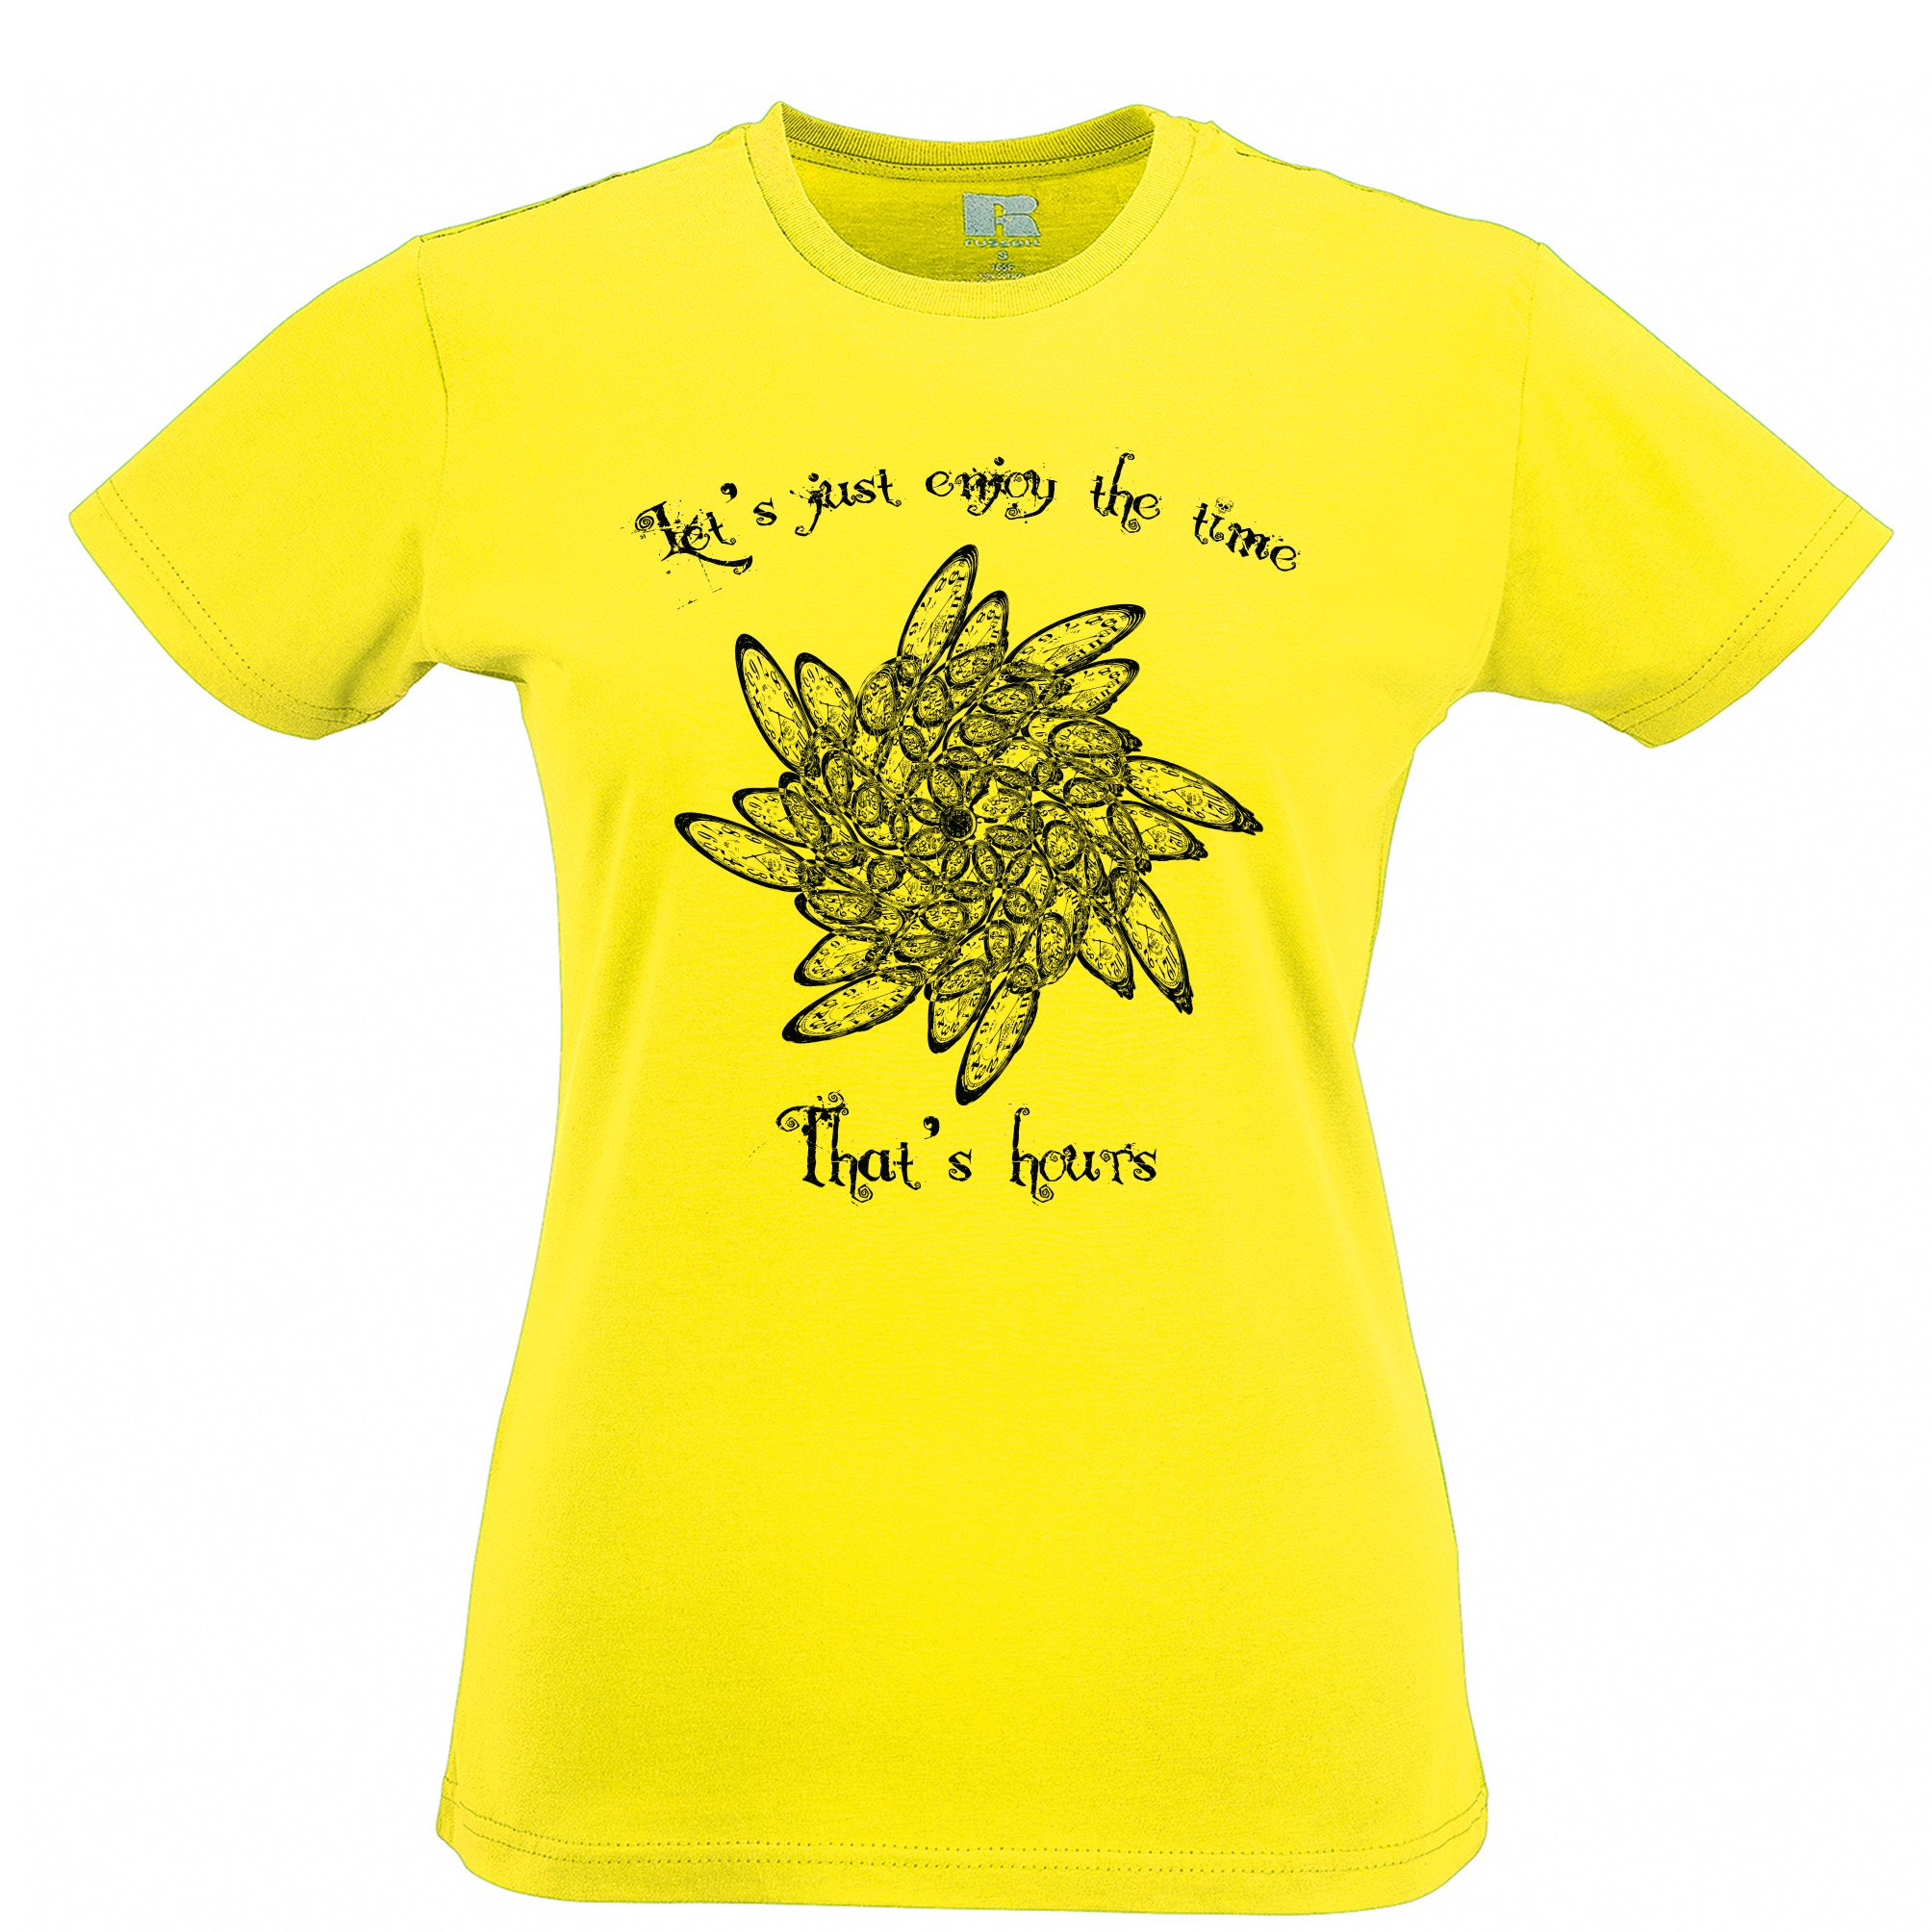 Enjoy The Time That's Hours Womens T-Shirt by Tim And Ted